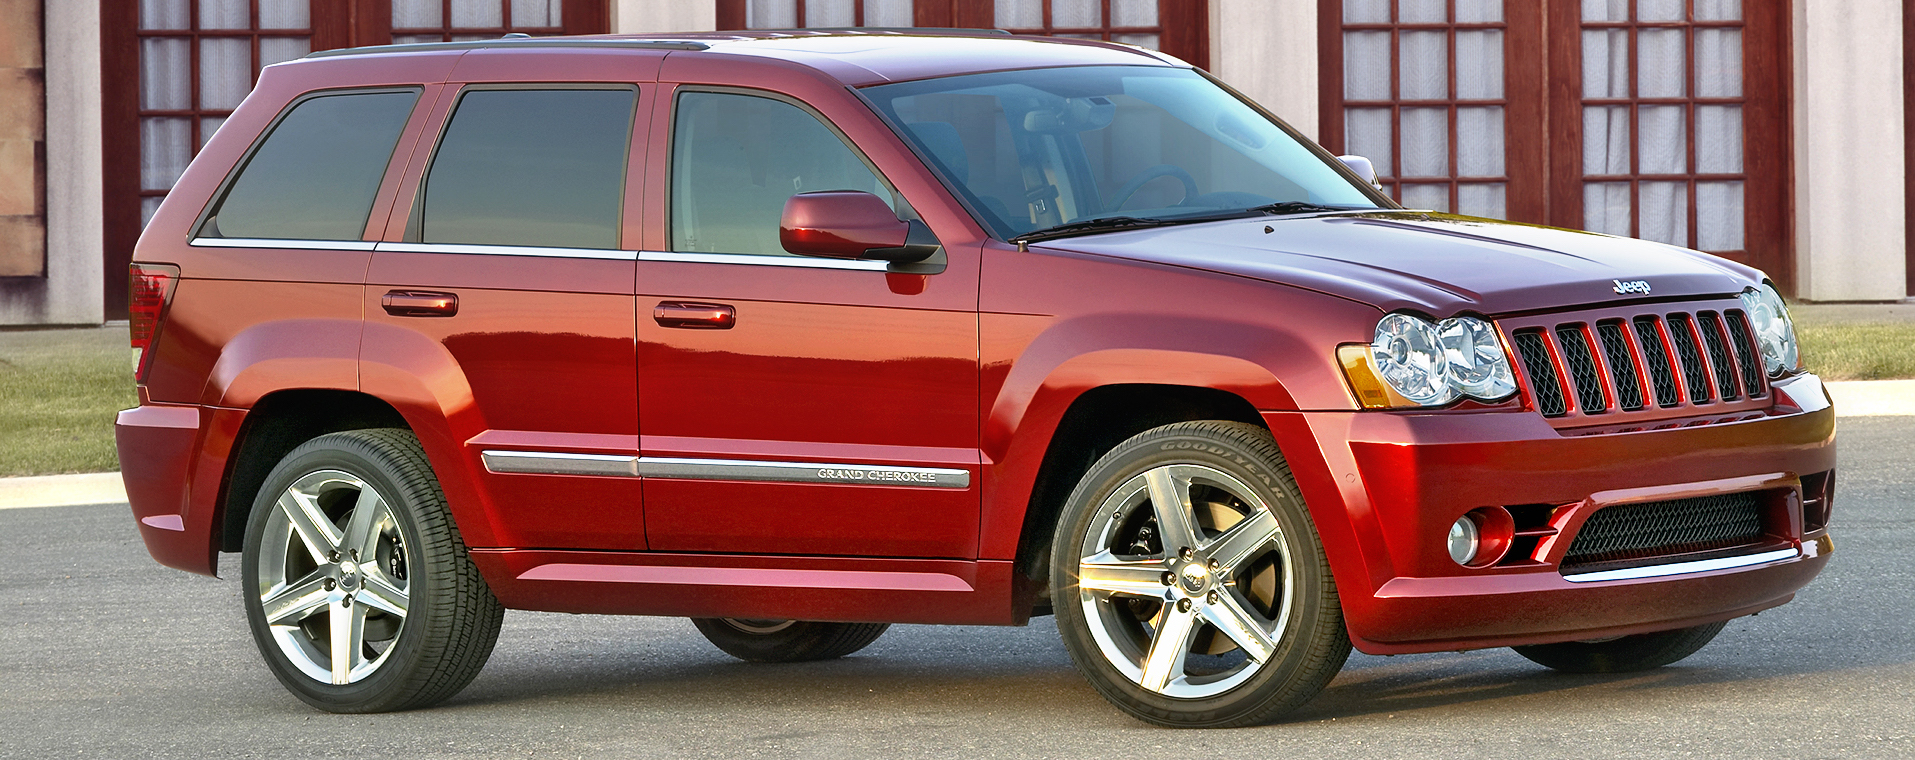 jeep_grand_cherokee_srt8_6